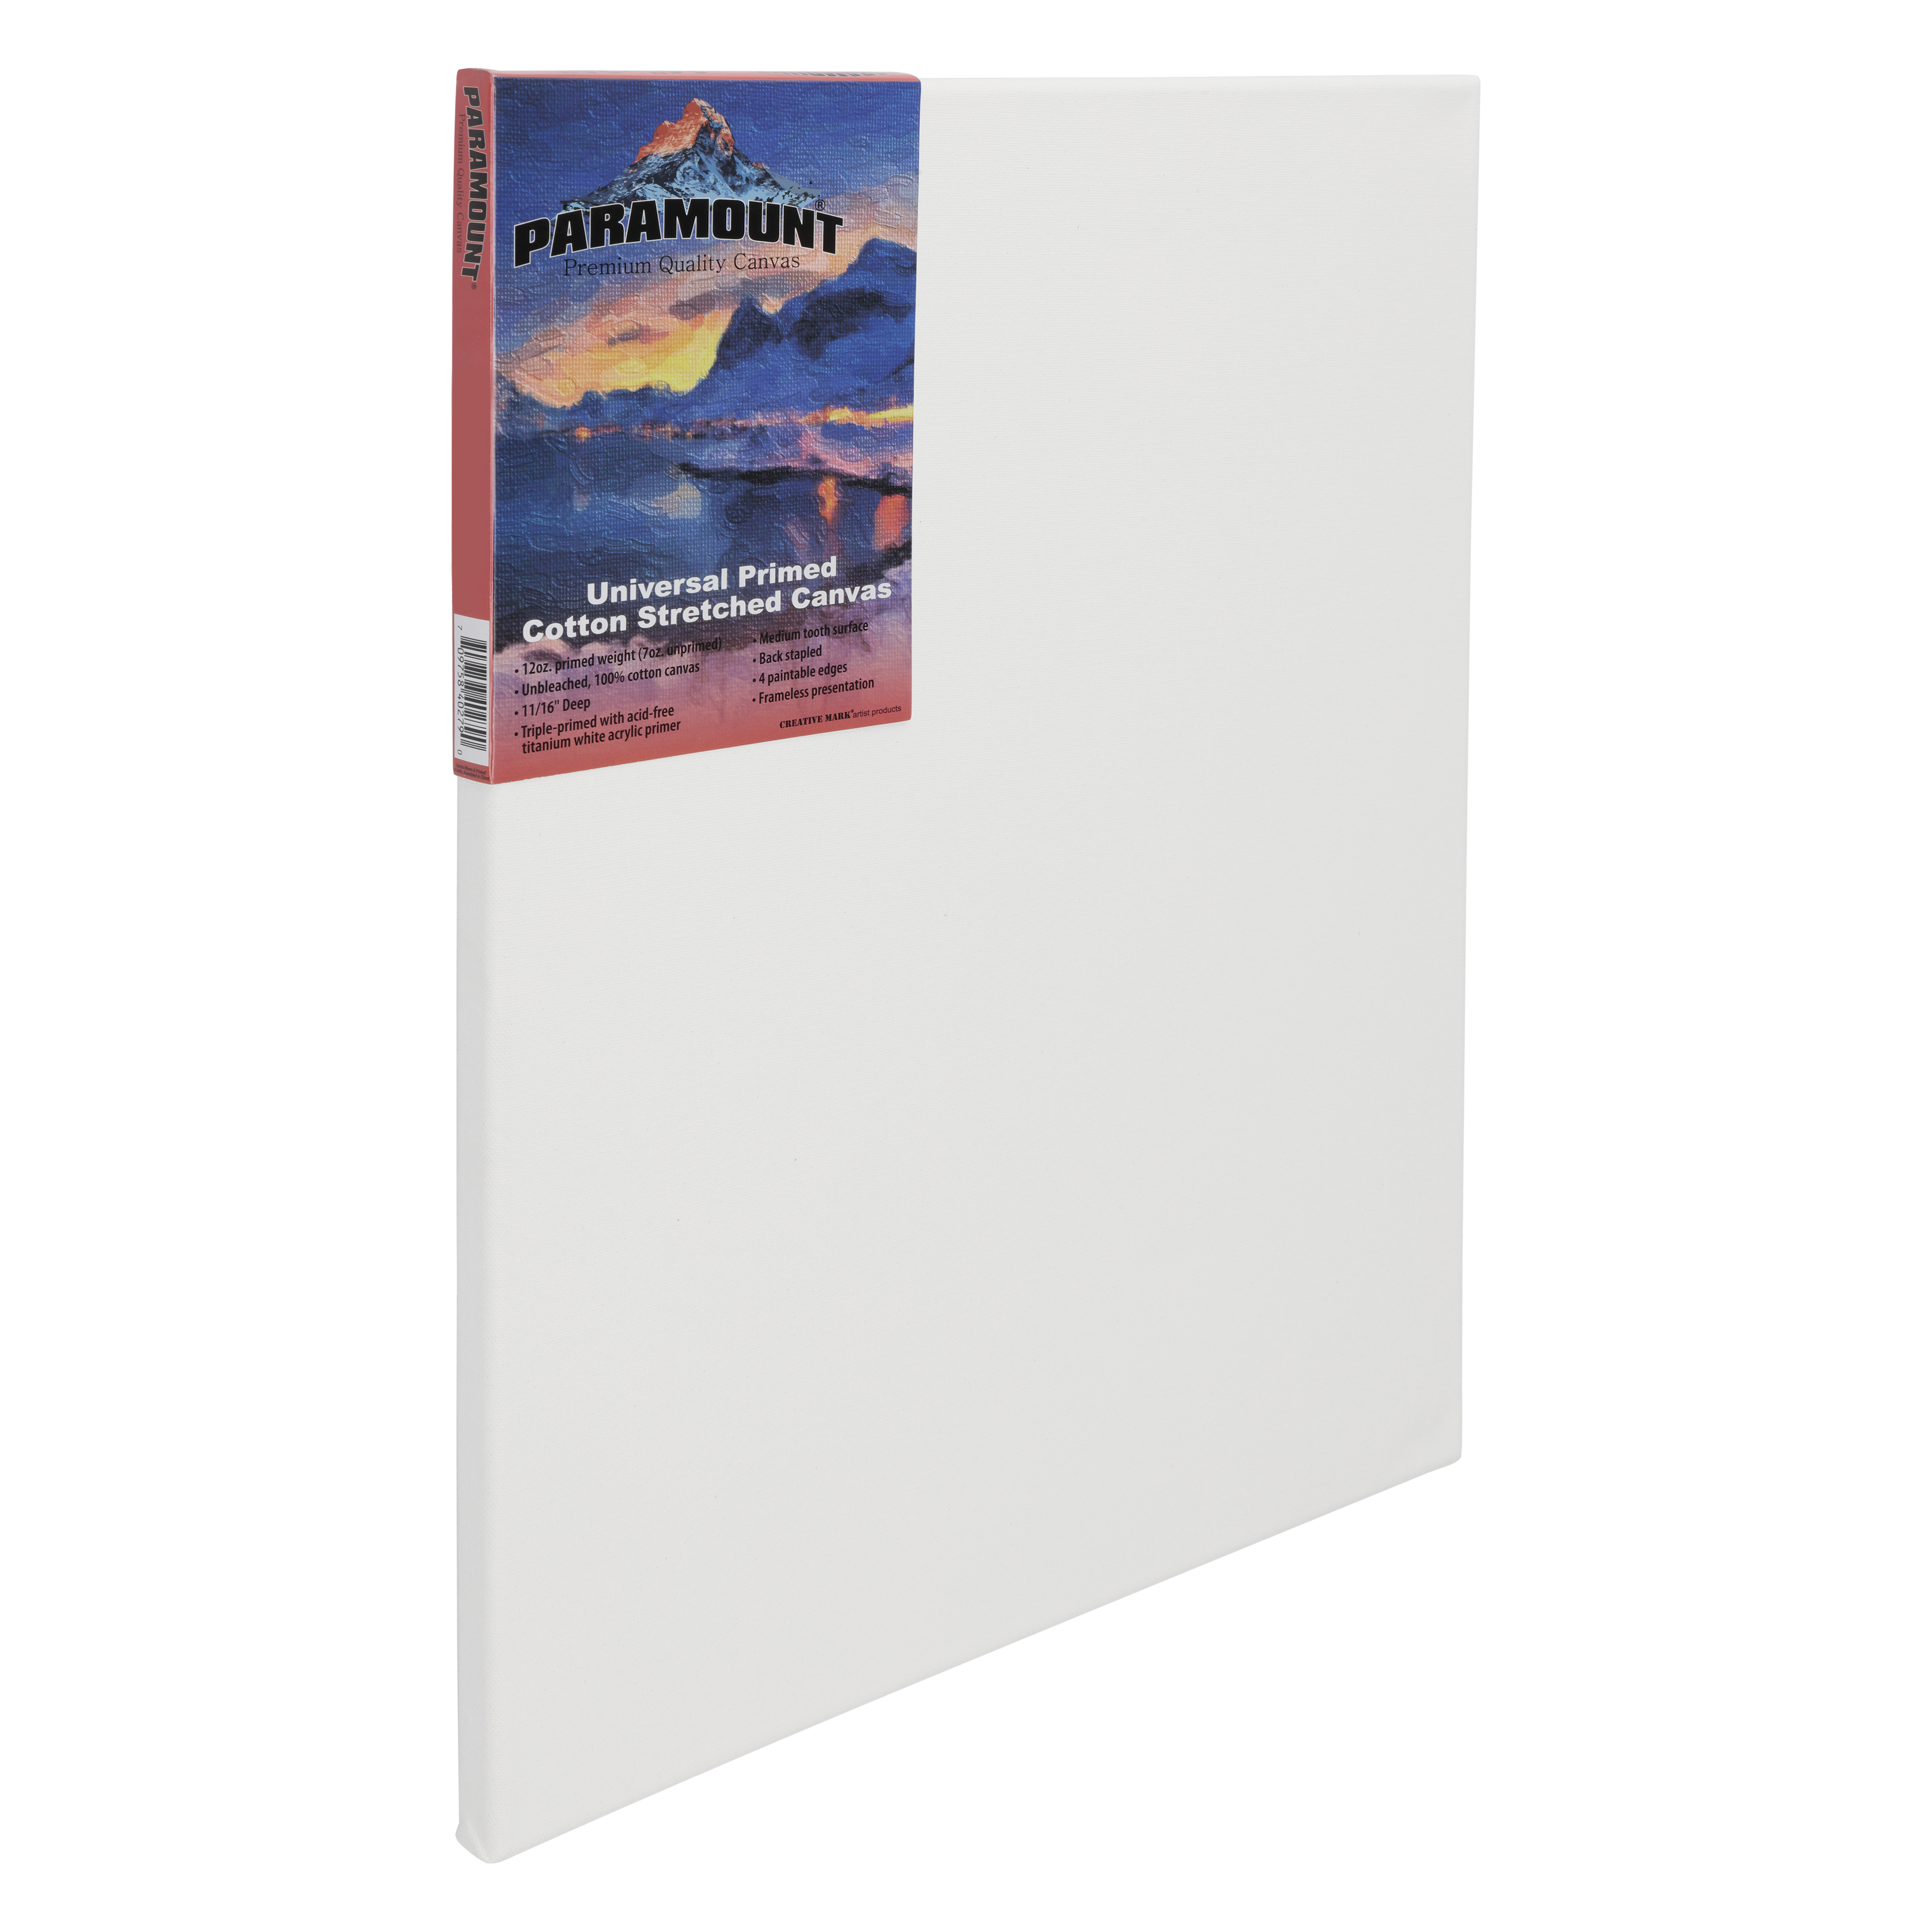 12x16 2-Pack BLACK Practica Economy Pre Stretched Canvas Cotton Artist Acid Free Primed Painting Canvas 5//8 Deep